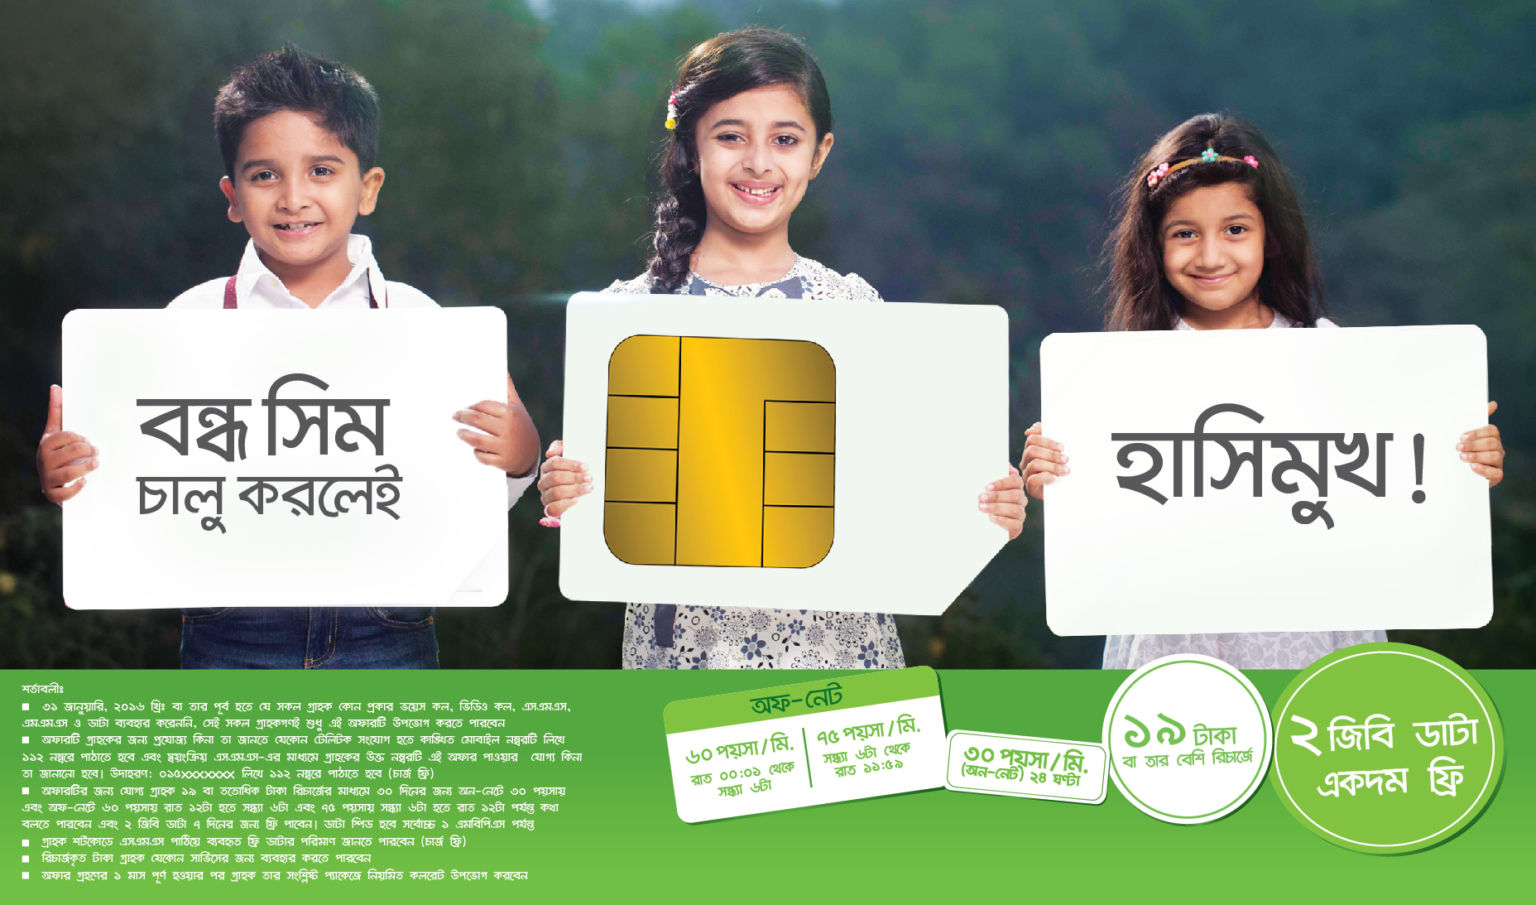 Teletalk Closed SIM offer  recharge at least Tk.19 or more and he/she will get 2GB data(24 Hours usage facility) with a validity of 7 days.